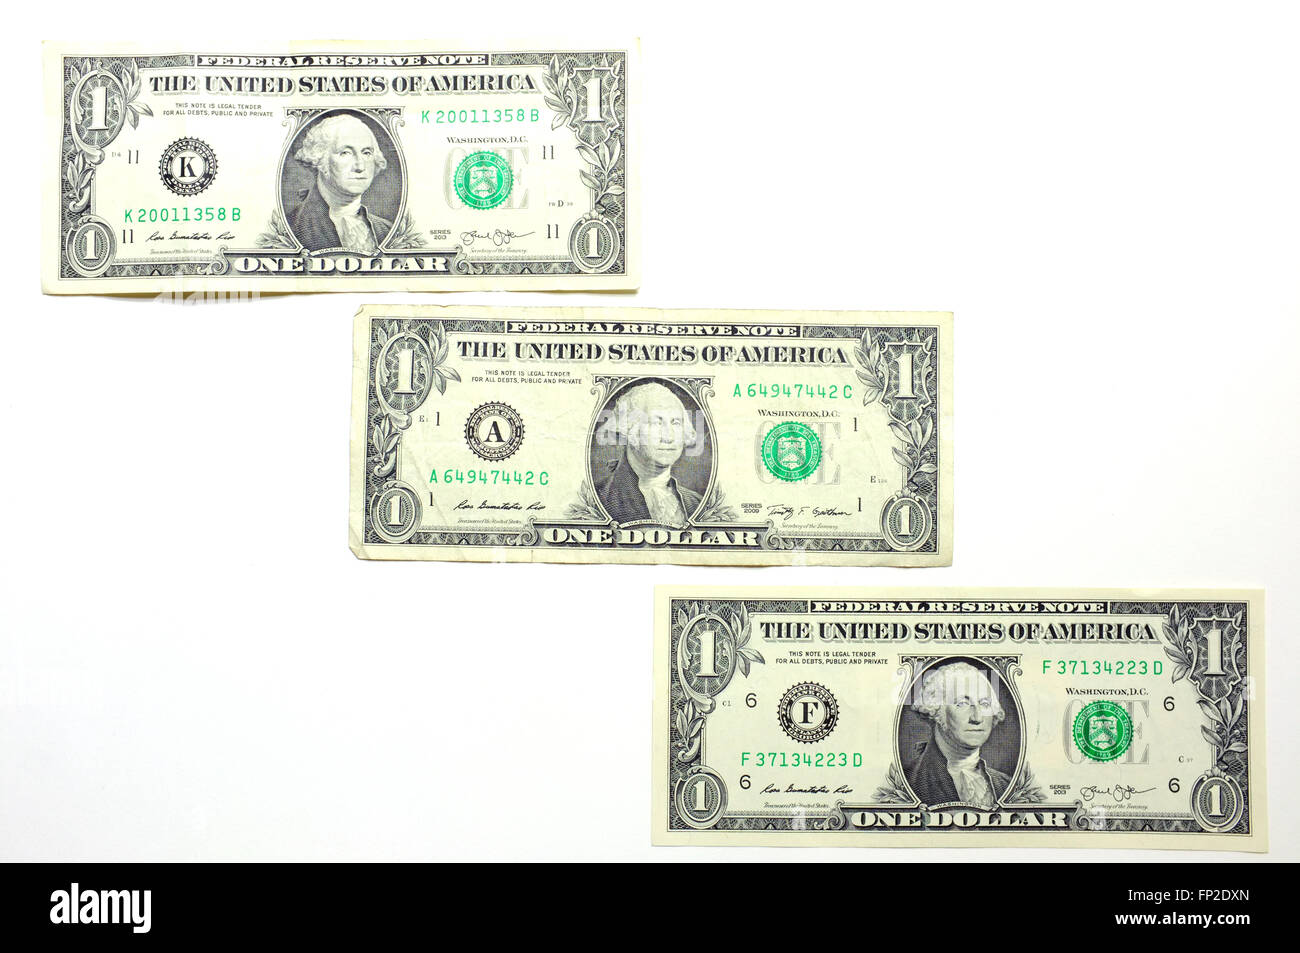 Three American One Dollar notes photographed against a white background - Stock Image